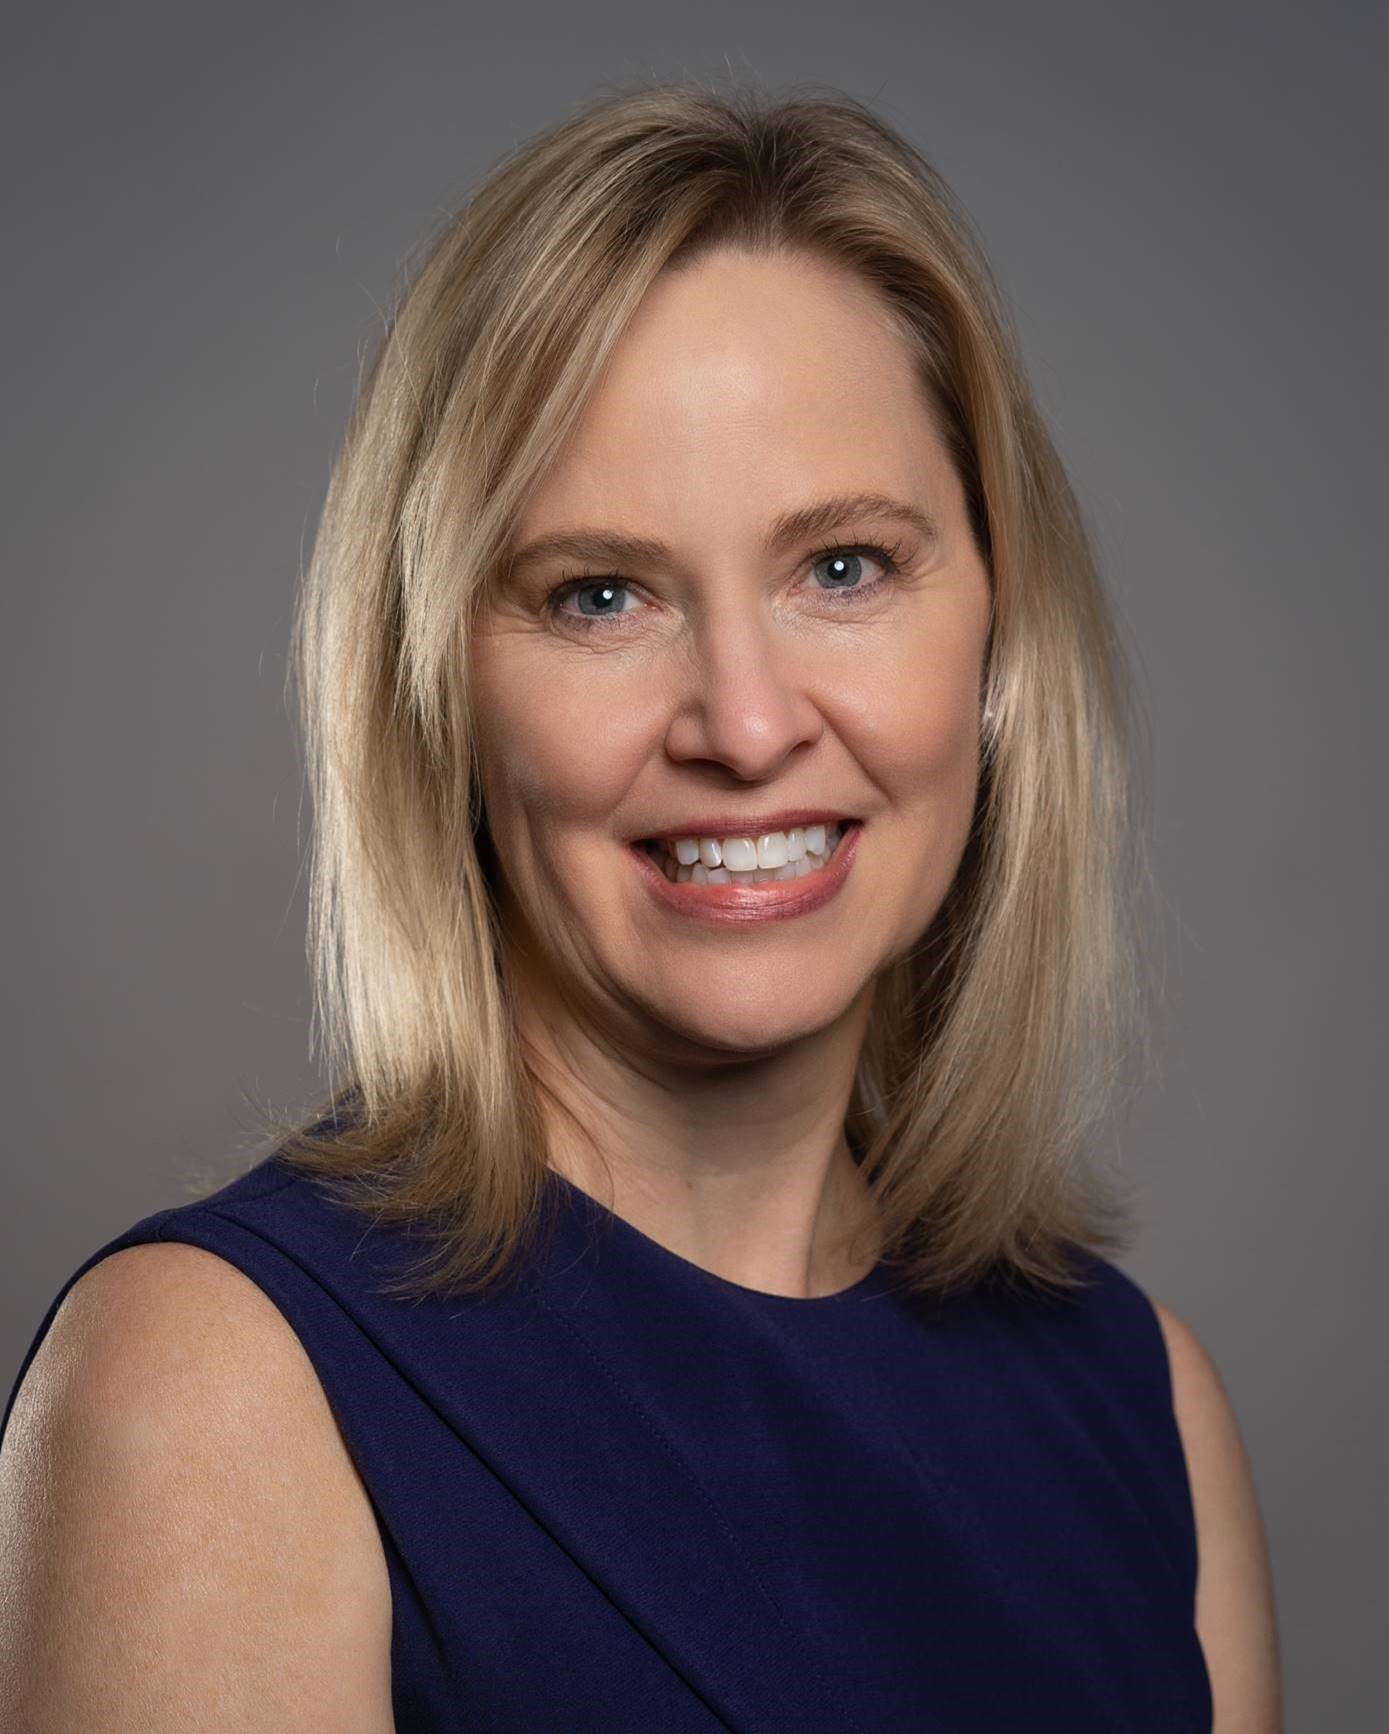 Suzanne Plummer Corporate Vice President of SOC Design and Architecture for the Radeon Technologies Group at AMD